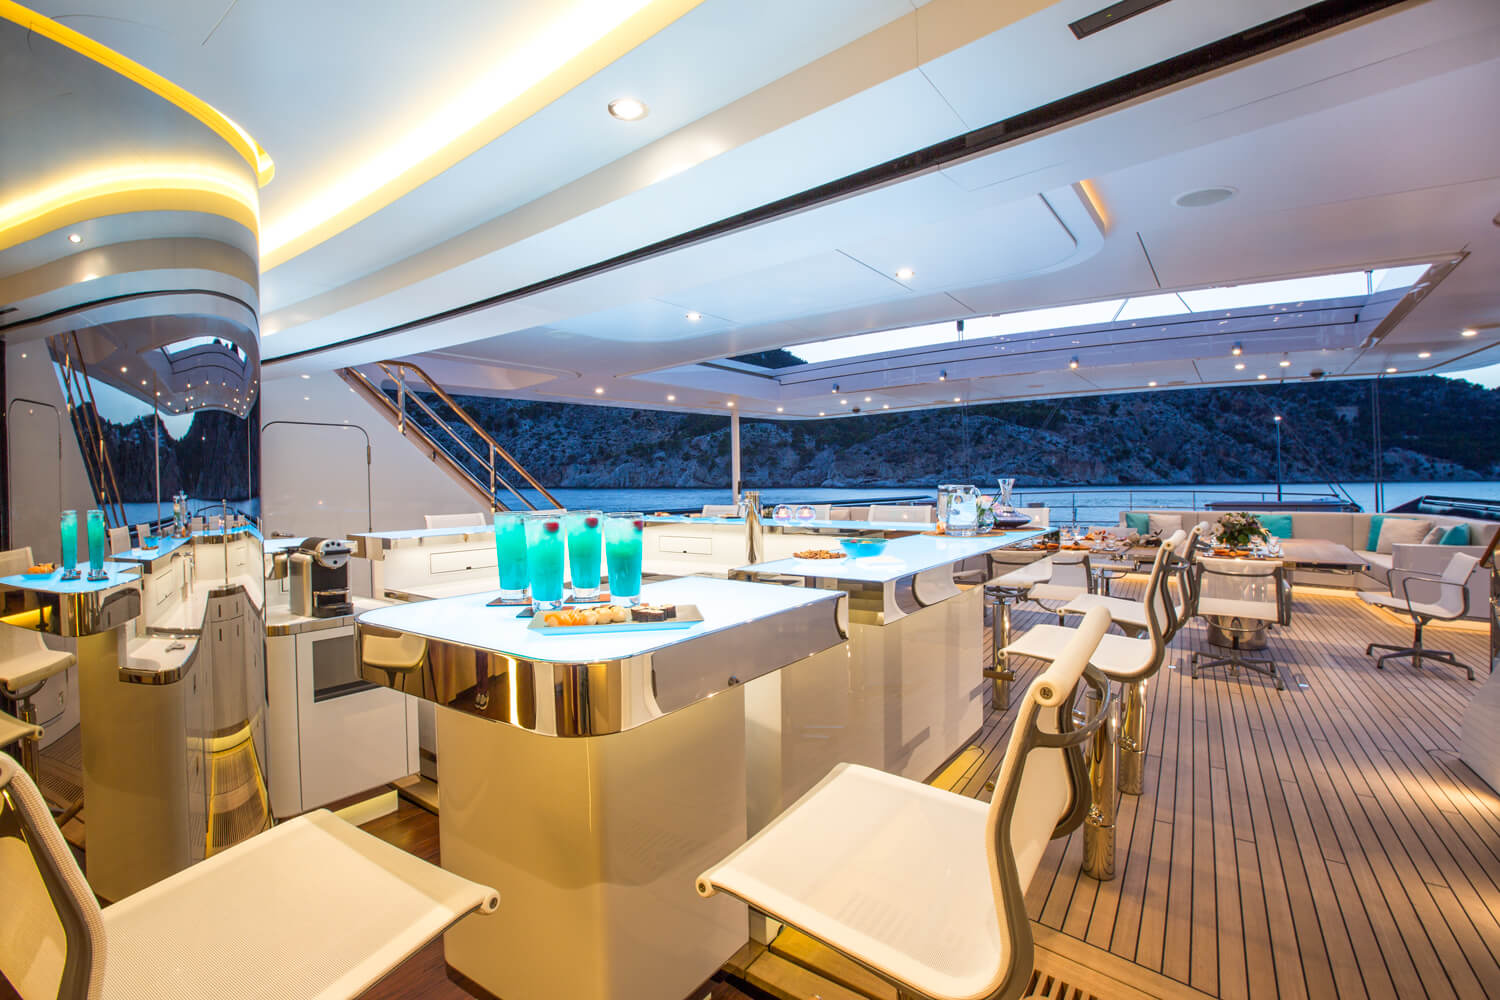 Bar And Seating Areas On The Aft Deck